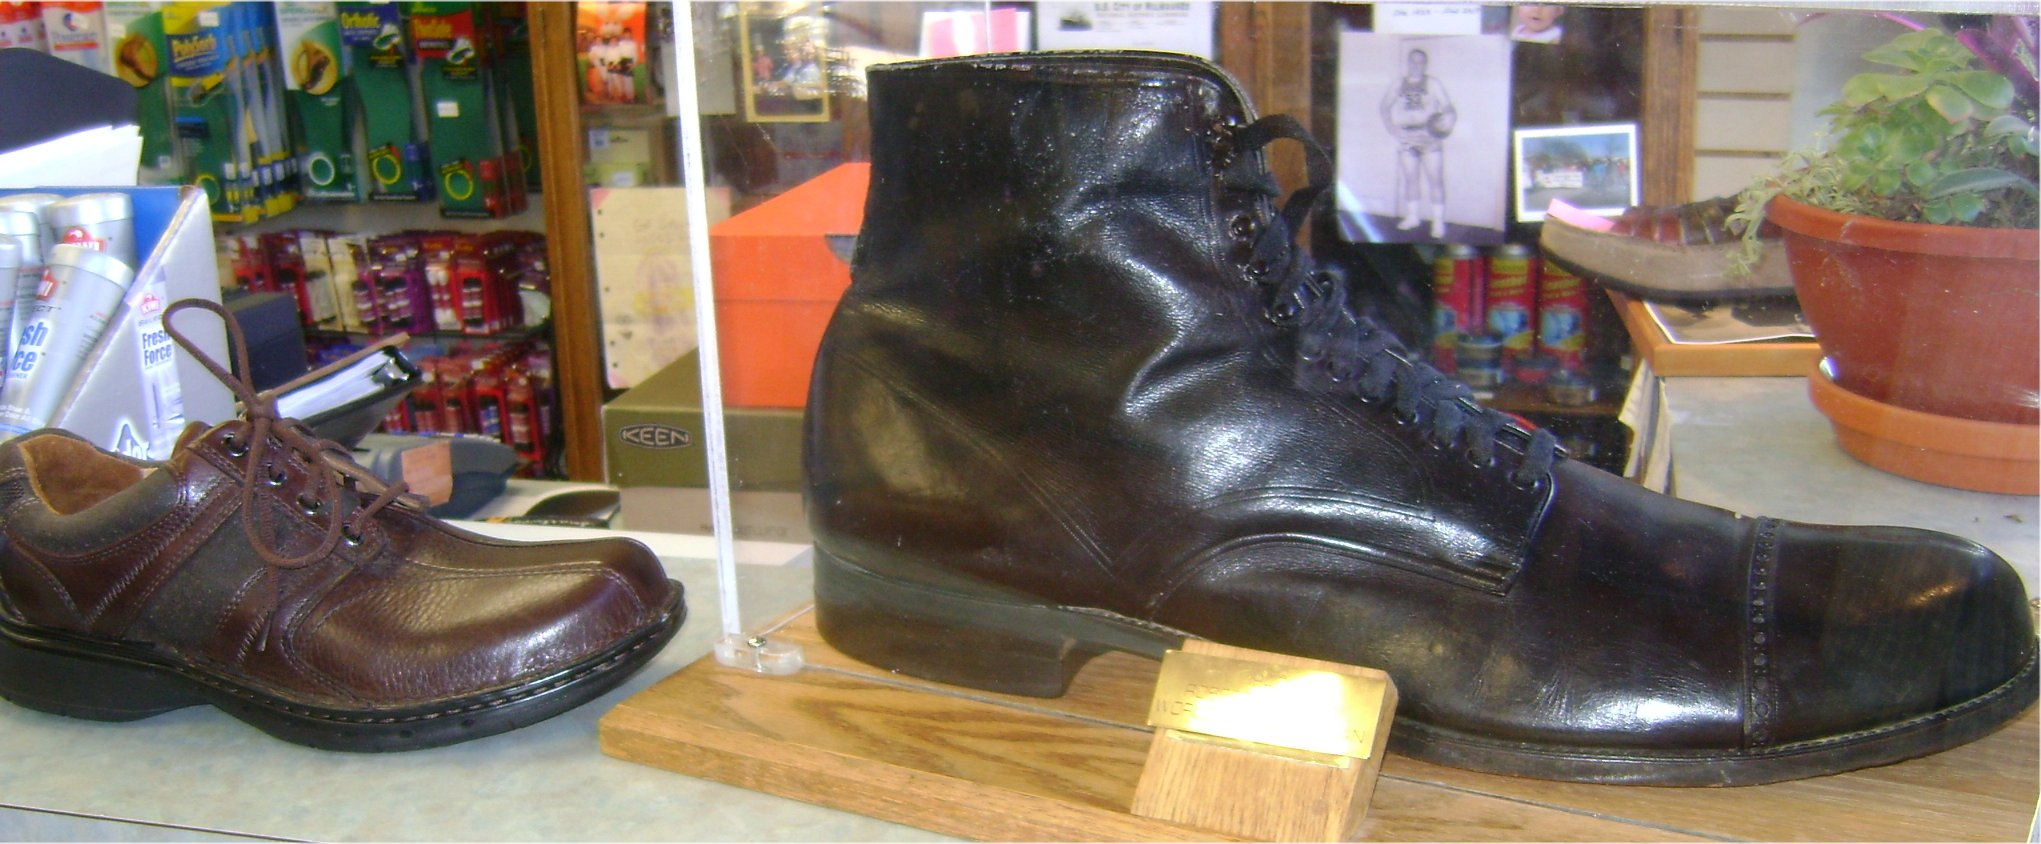 http://upload.wikimedia.org/wikipedia/commons/8/8c/Wadlow_shoe_compared.jpg